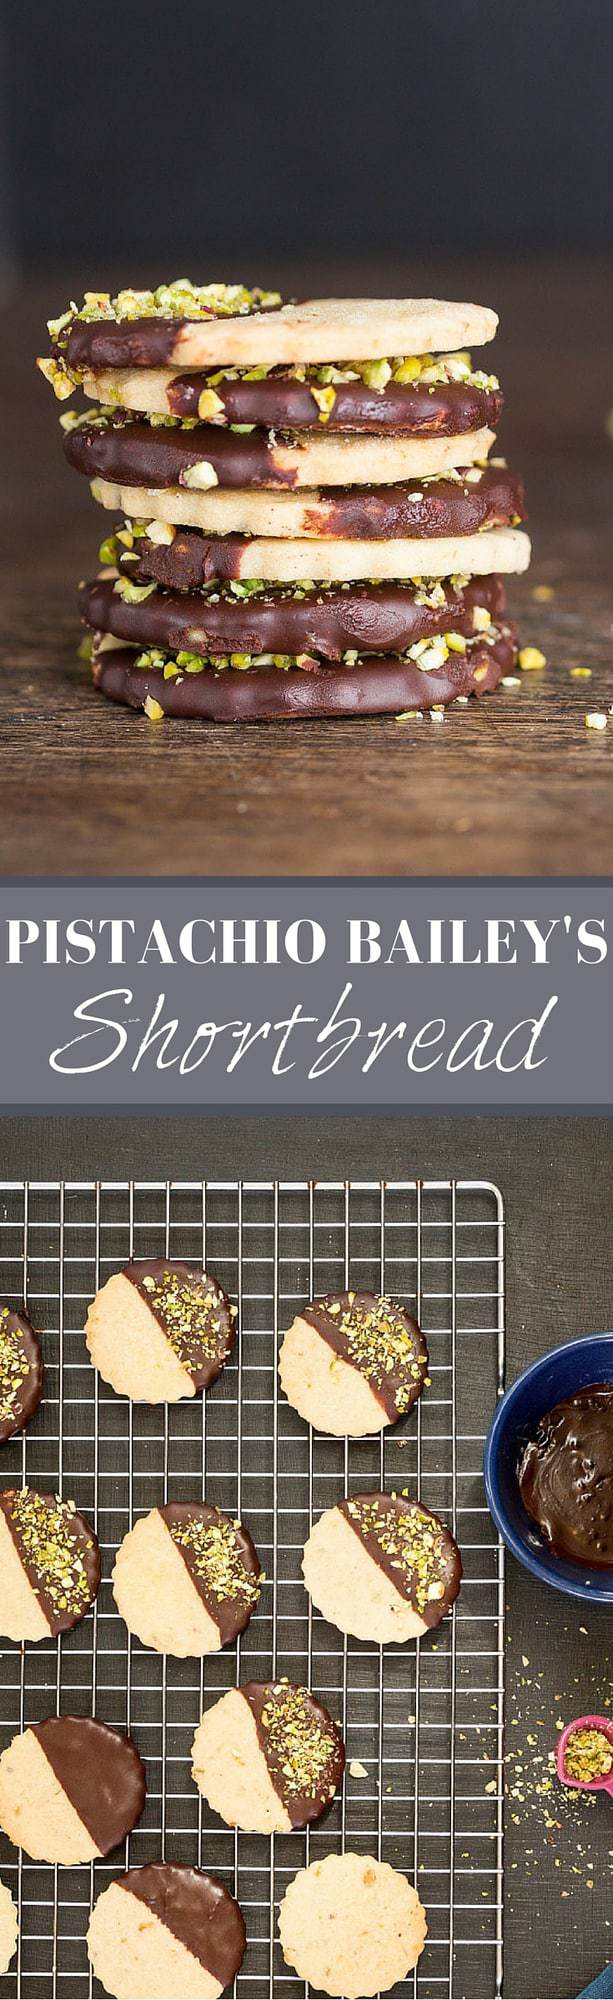 Pistachio Baileys Shortbread | Recipes From A Pantry